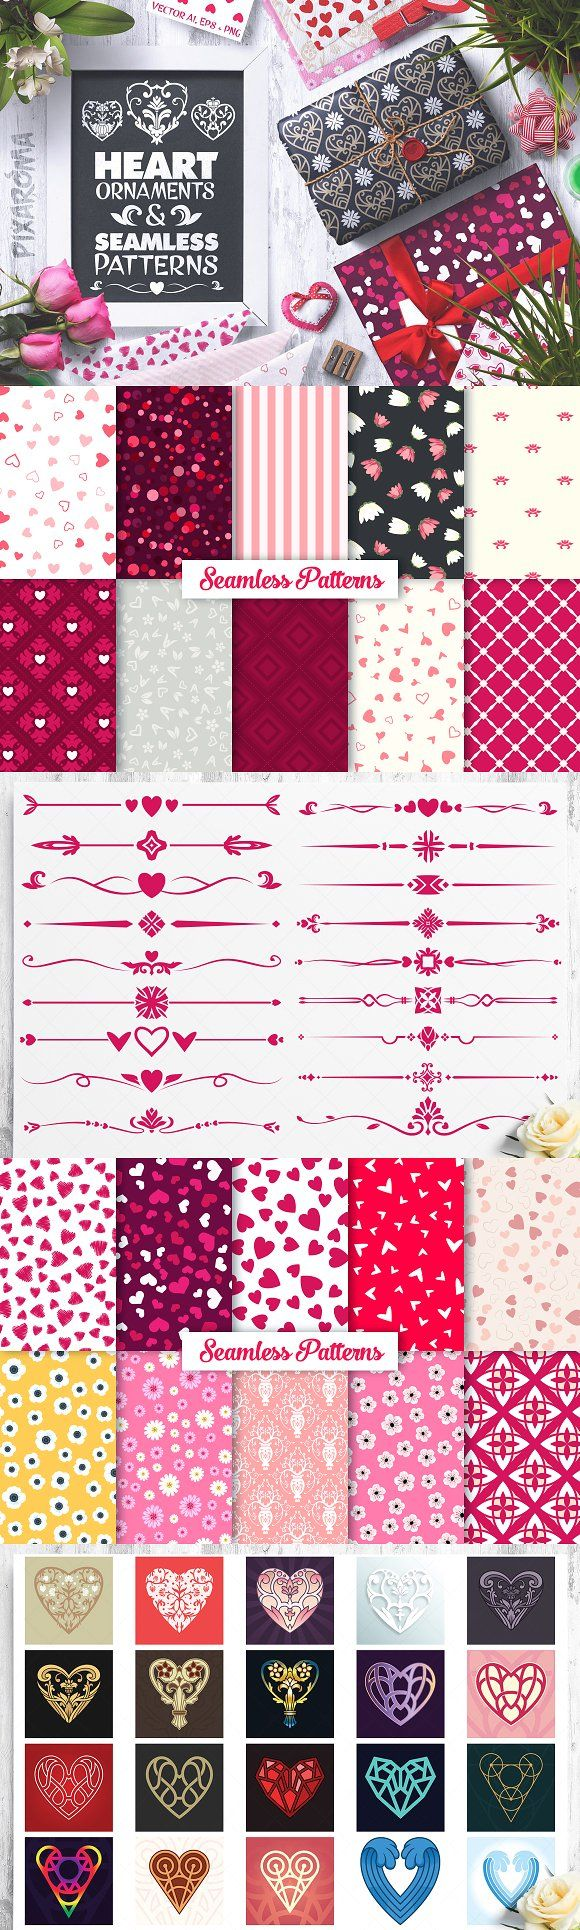 Elegant royal frame with crown vector colourbox - Heart Vector Ornaments And Patterns